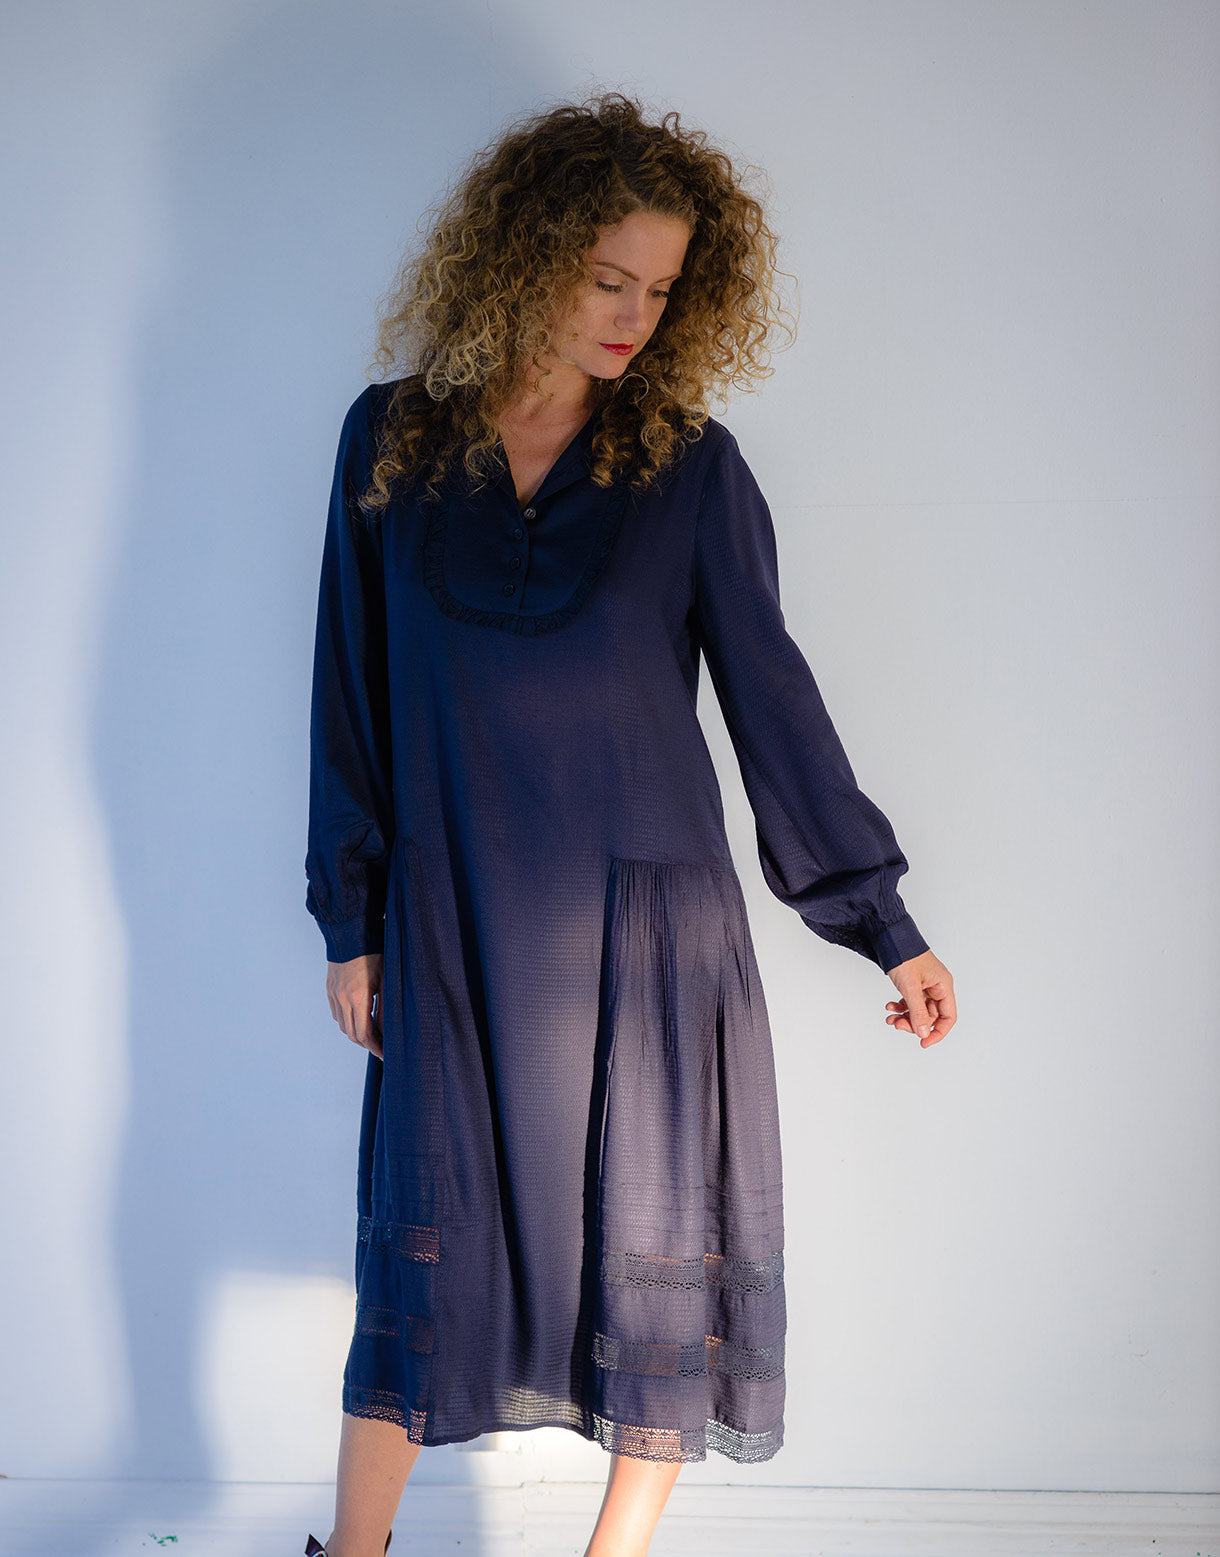 Teresa dress in Moody